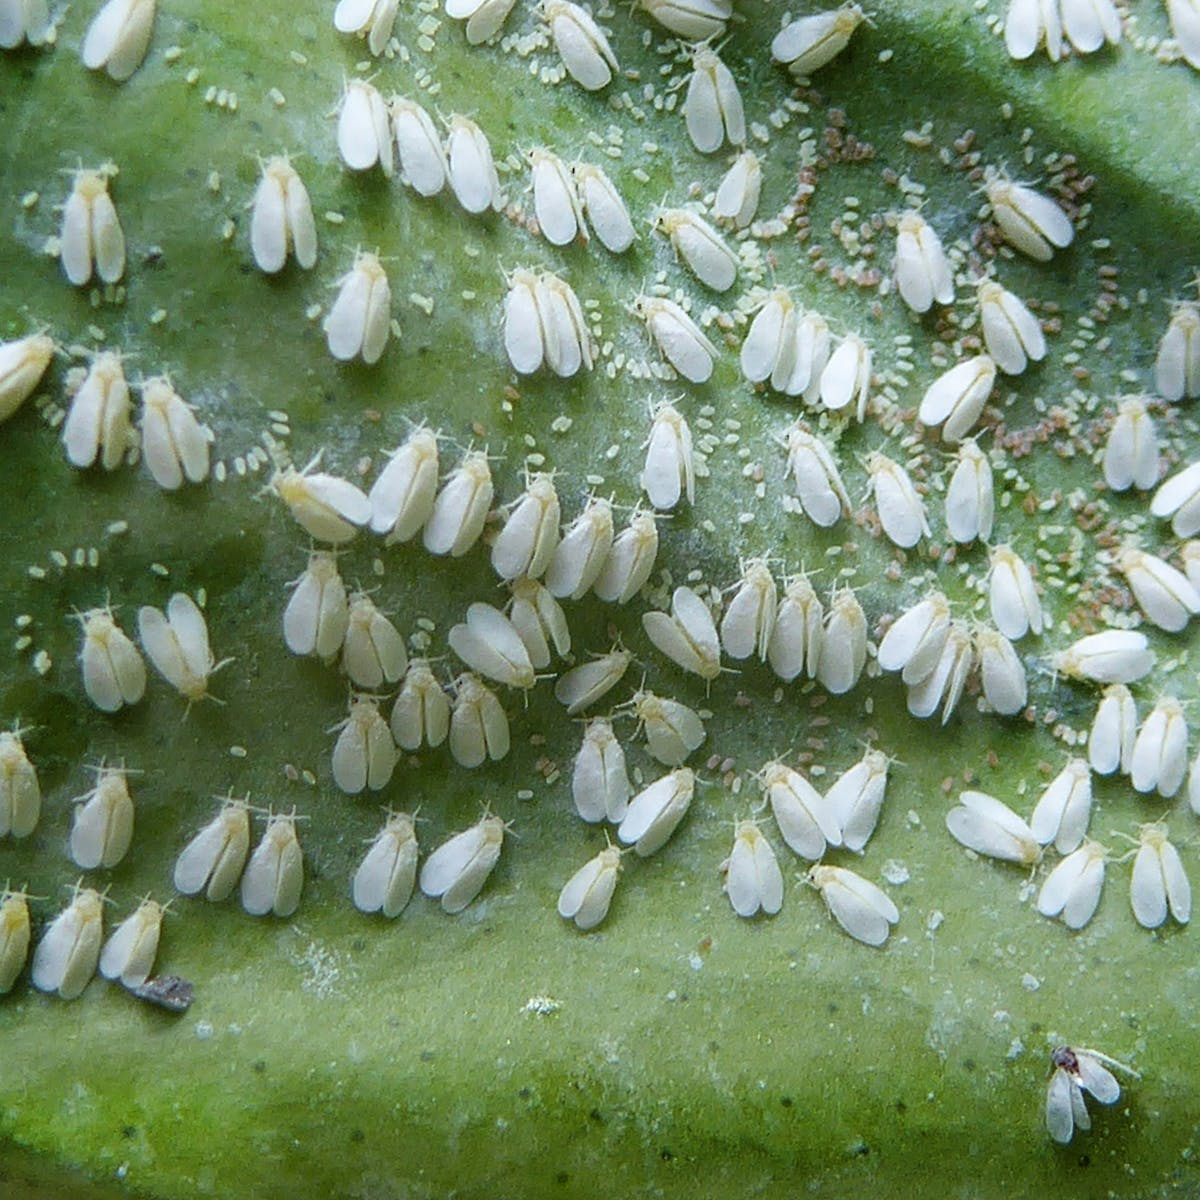 Africa S Most Notorious Insects The Bugs That Hit Agriculture The Hardest